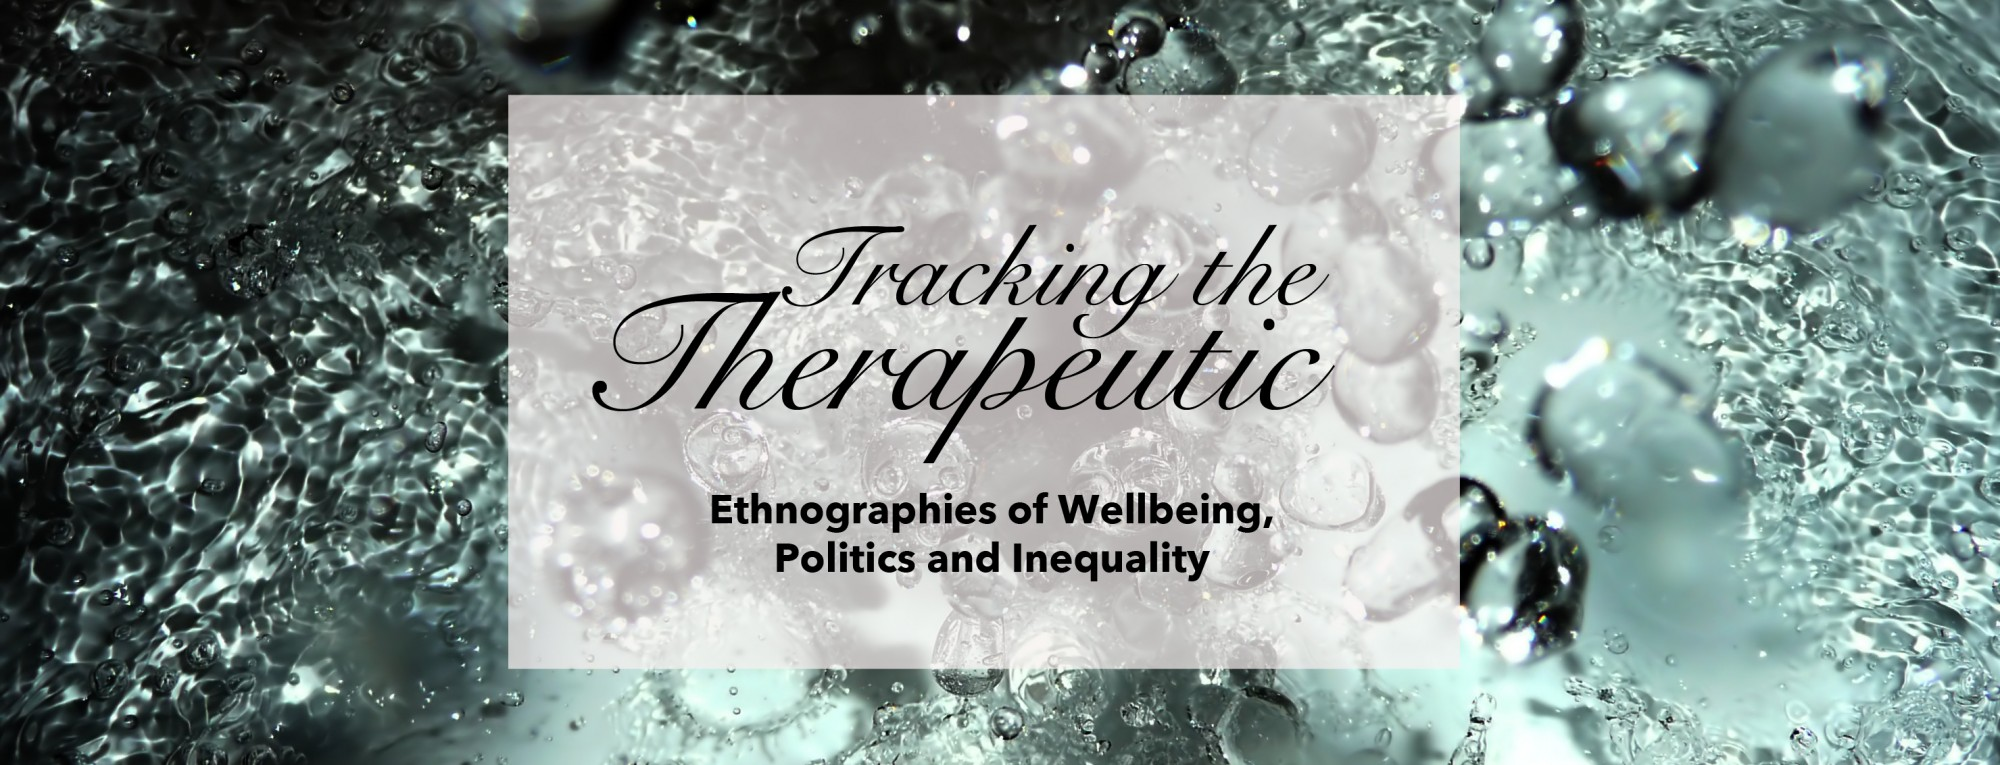 Tracking the Therapeutic (2015-2019)